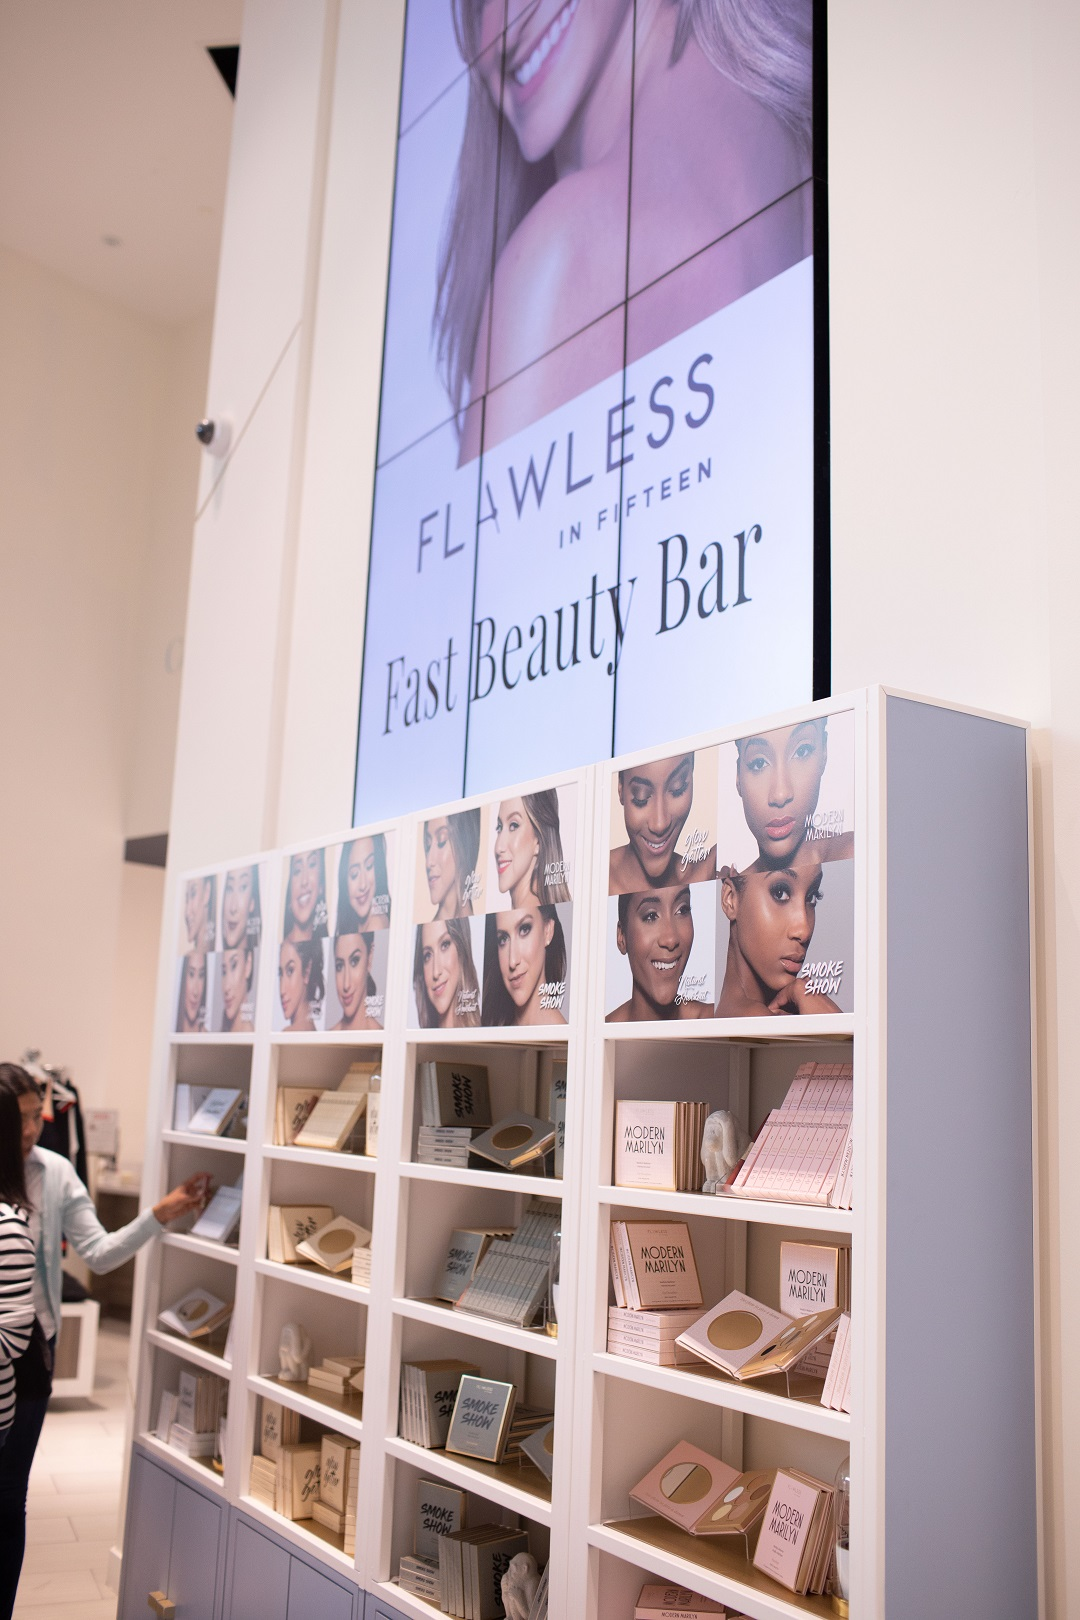 PHoto: Flawless by Friday